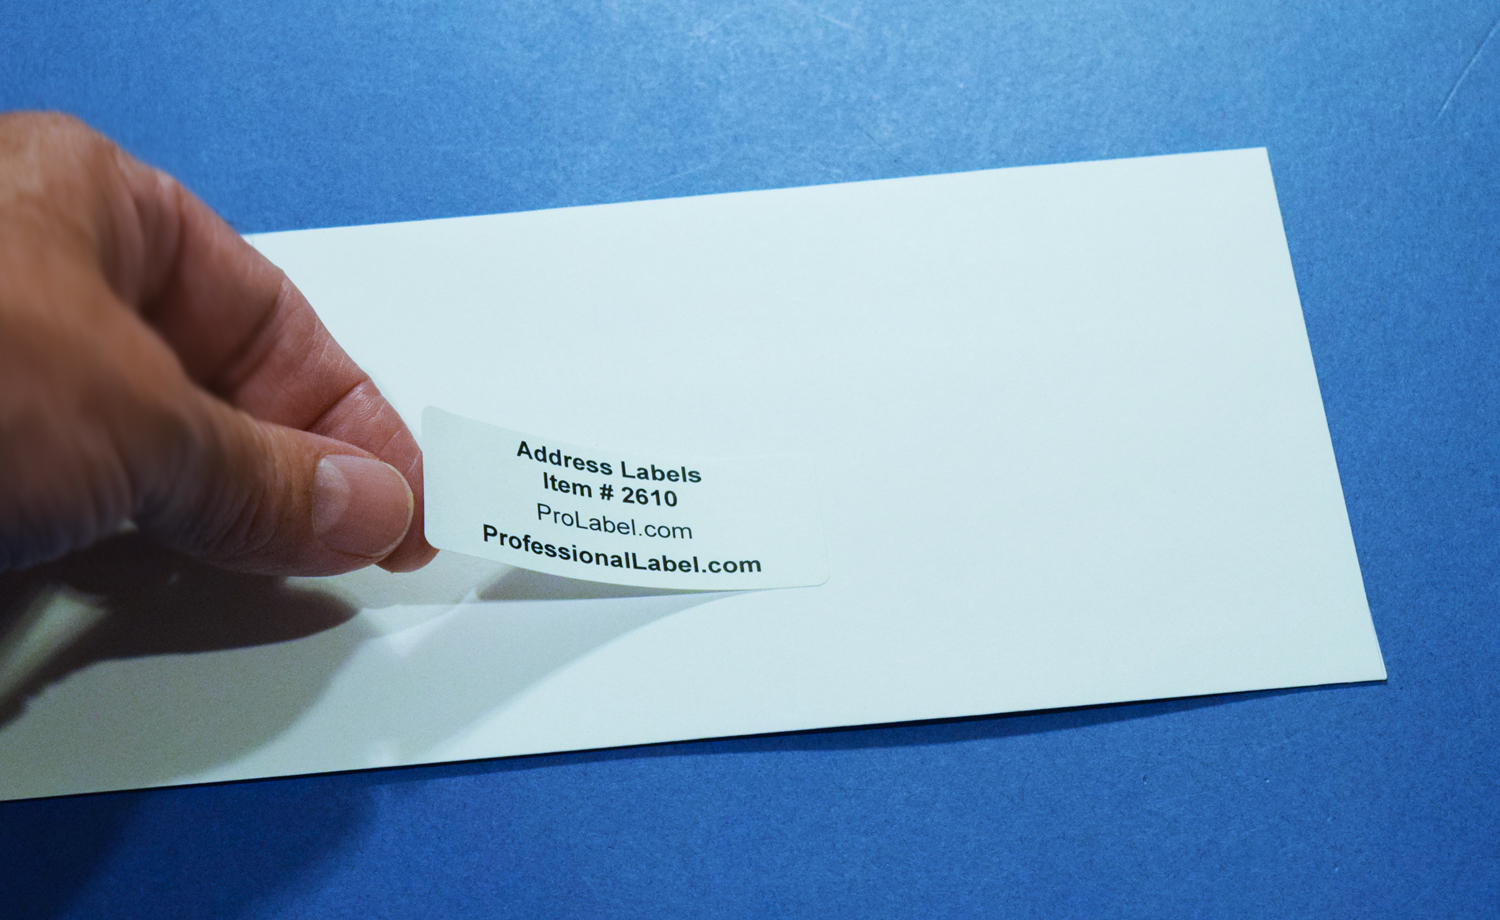 It is a picture of Superb Address Labels in Pages